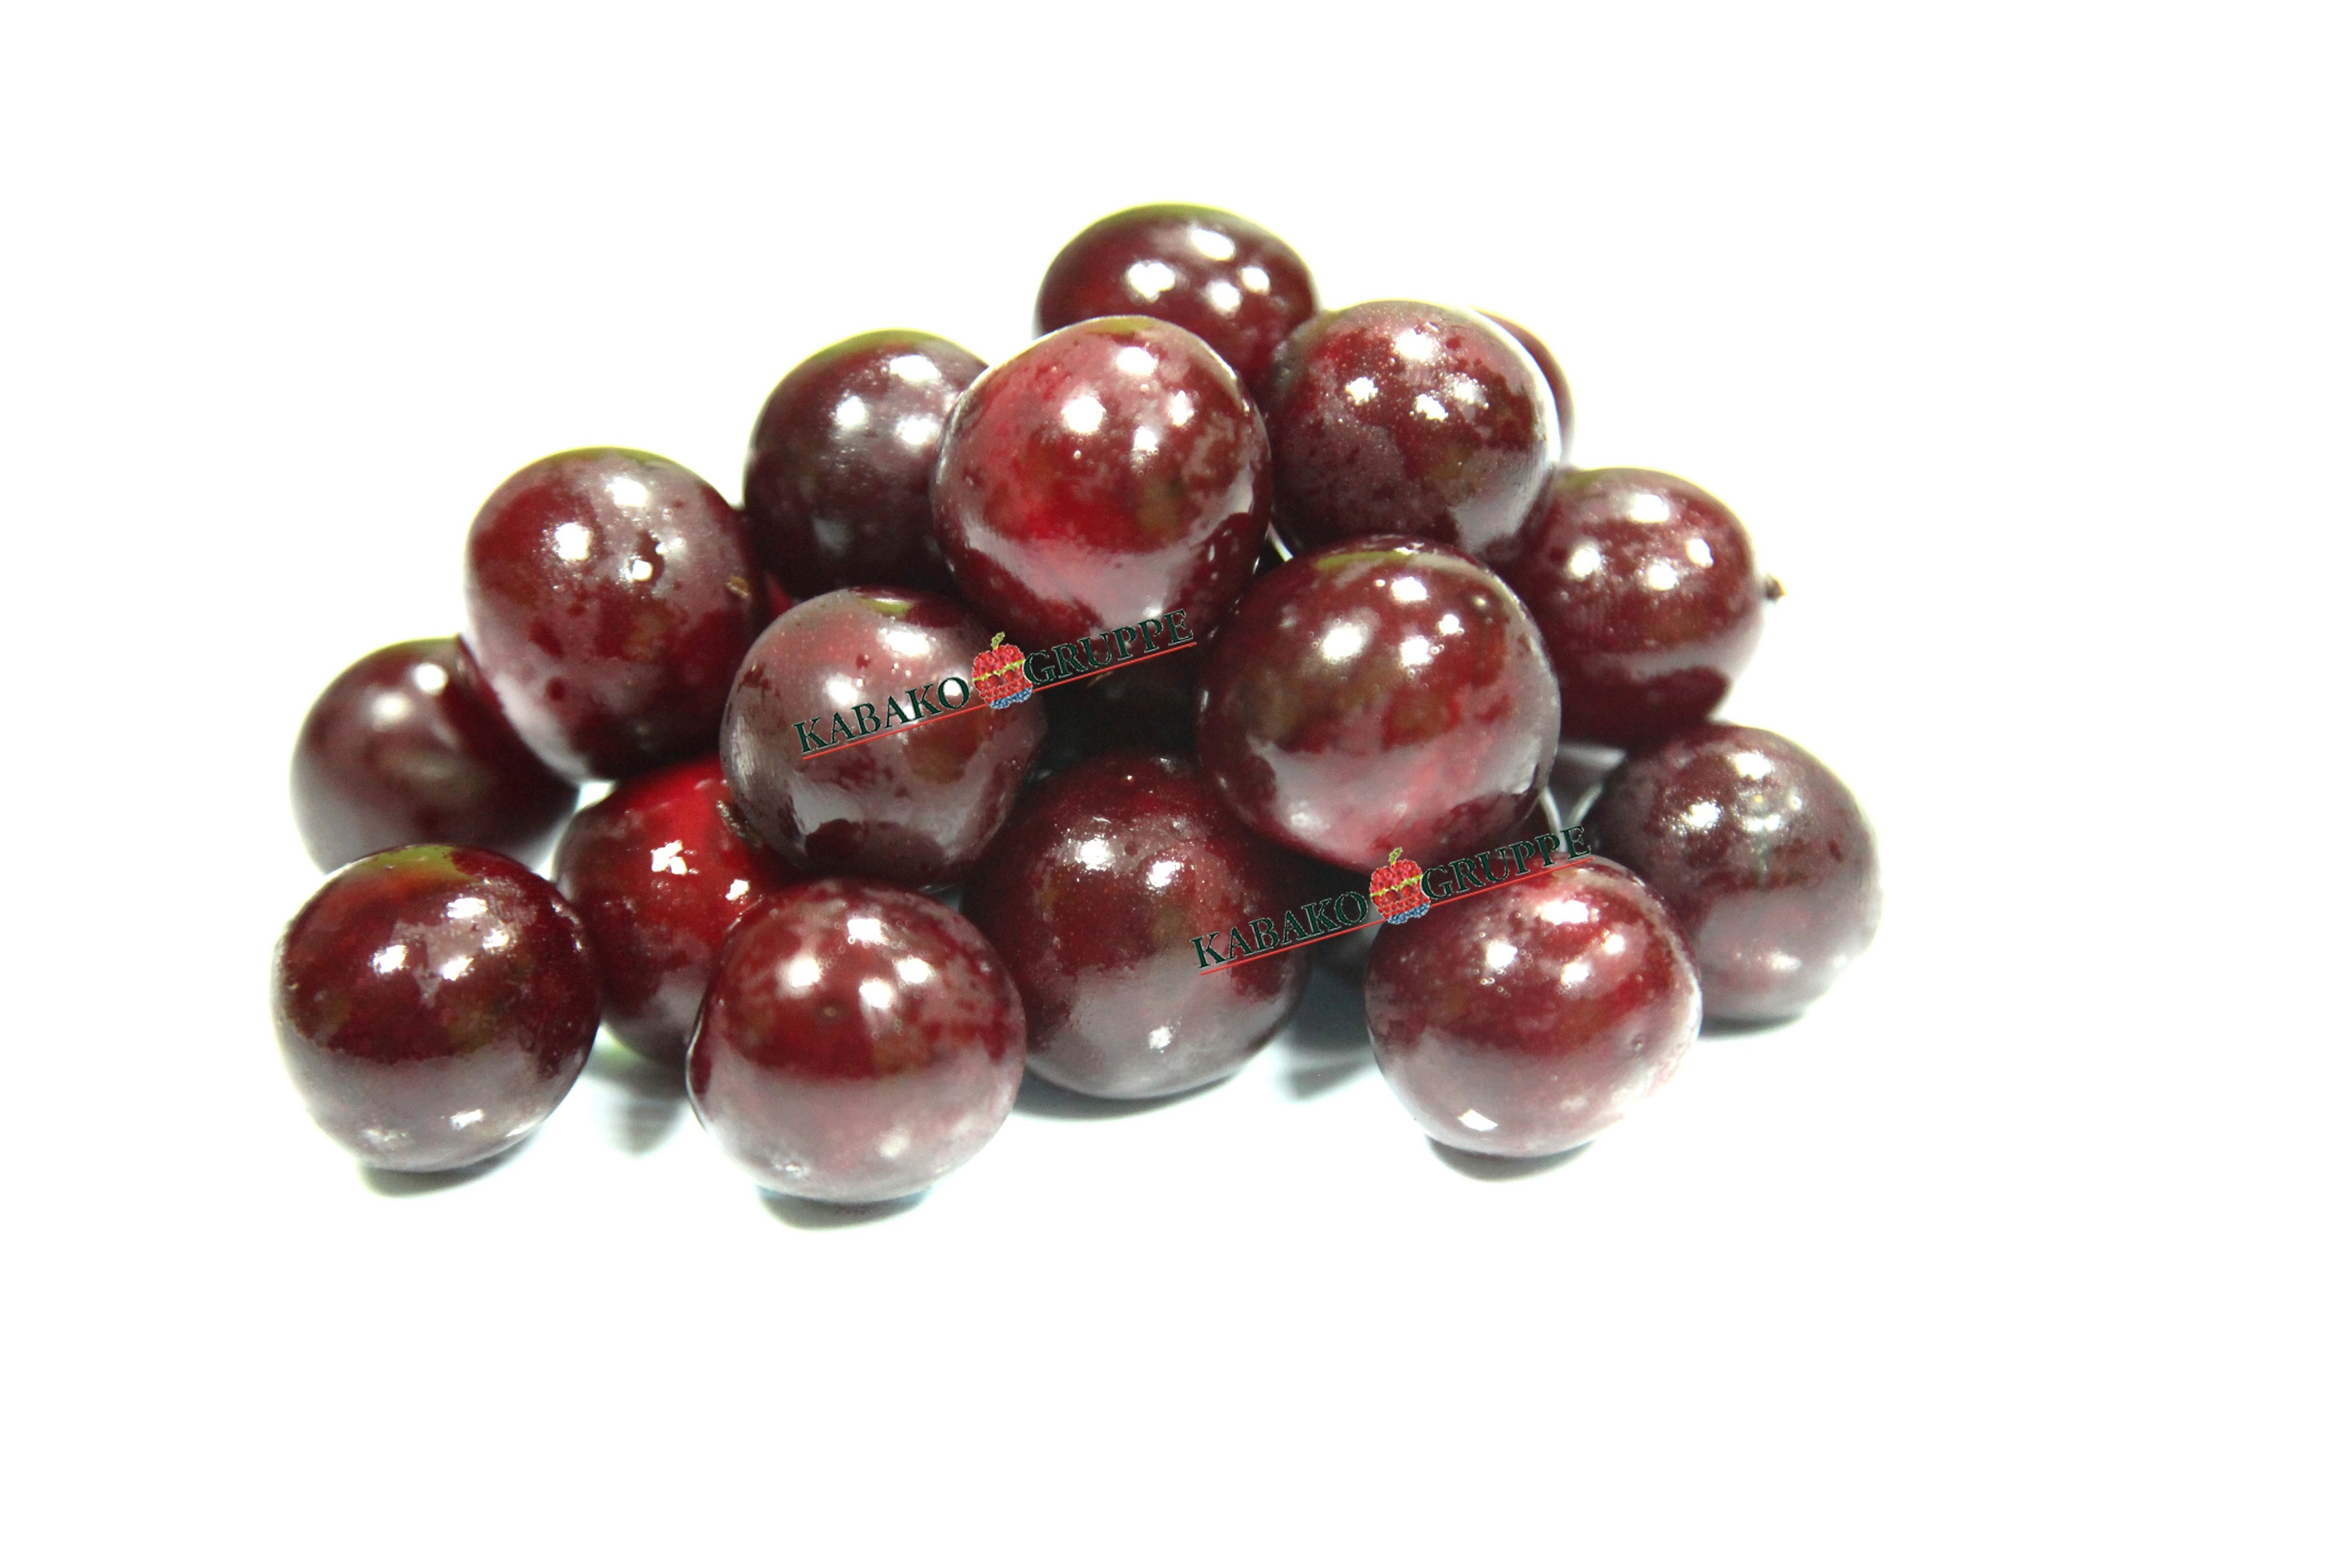 Frozen (IQF) Sour Cherries 8